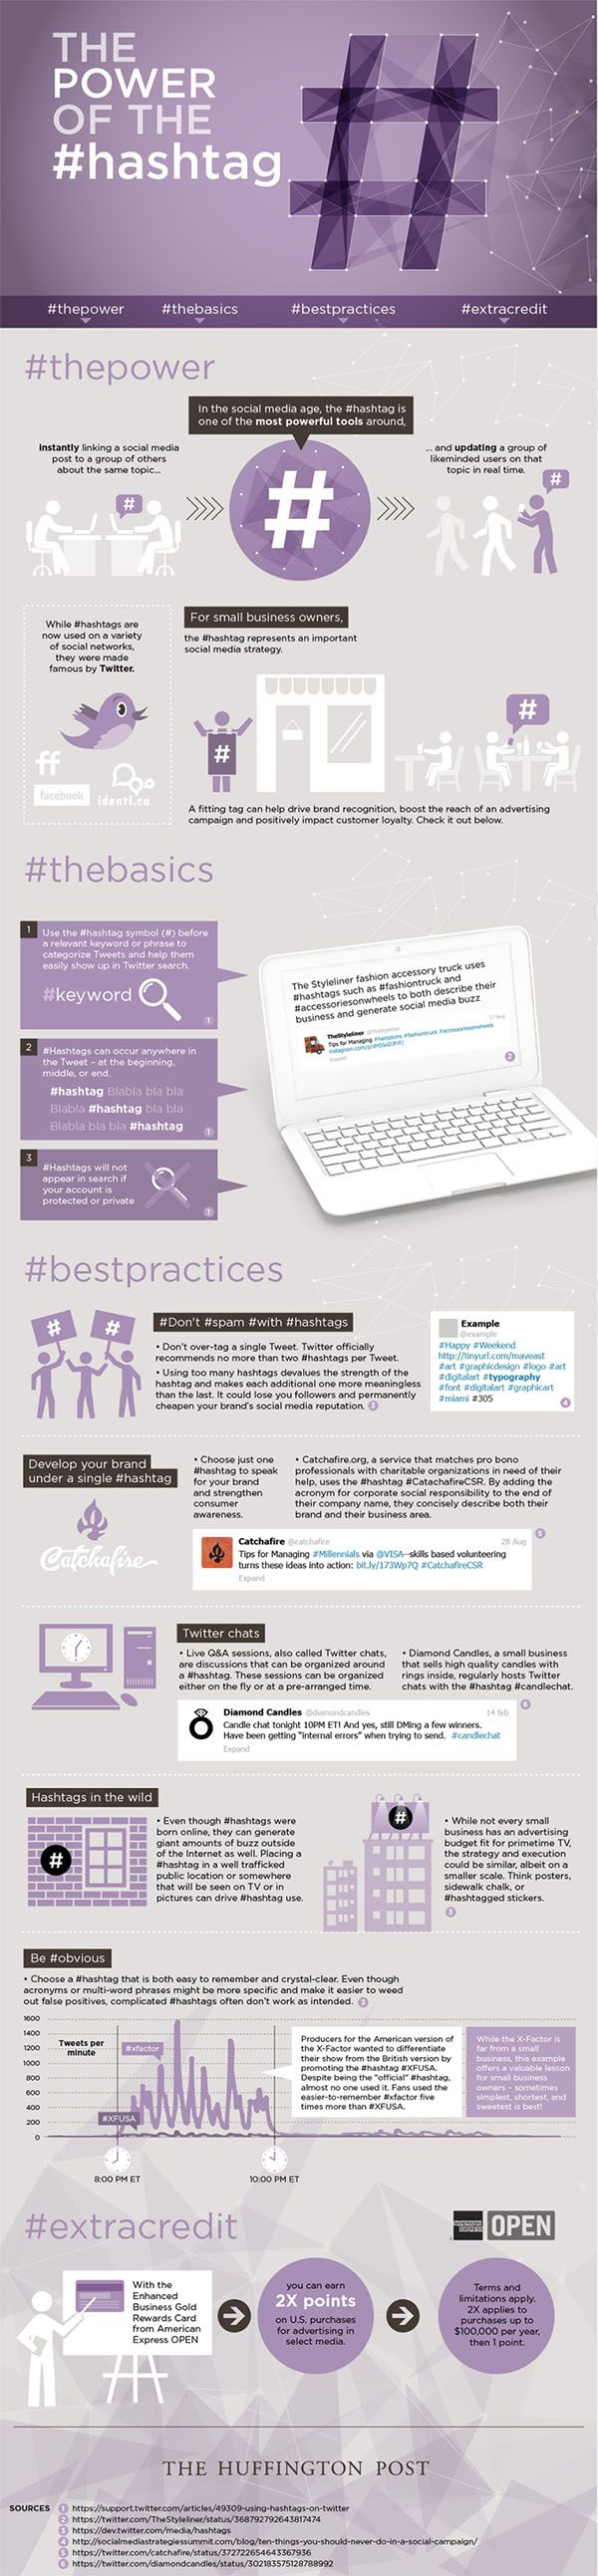 InforMedia Services (IMS) » Blog Archive » 5 Twitter Hashtag Rules You Must Follow to Avoid Annoying Your Followers